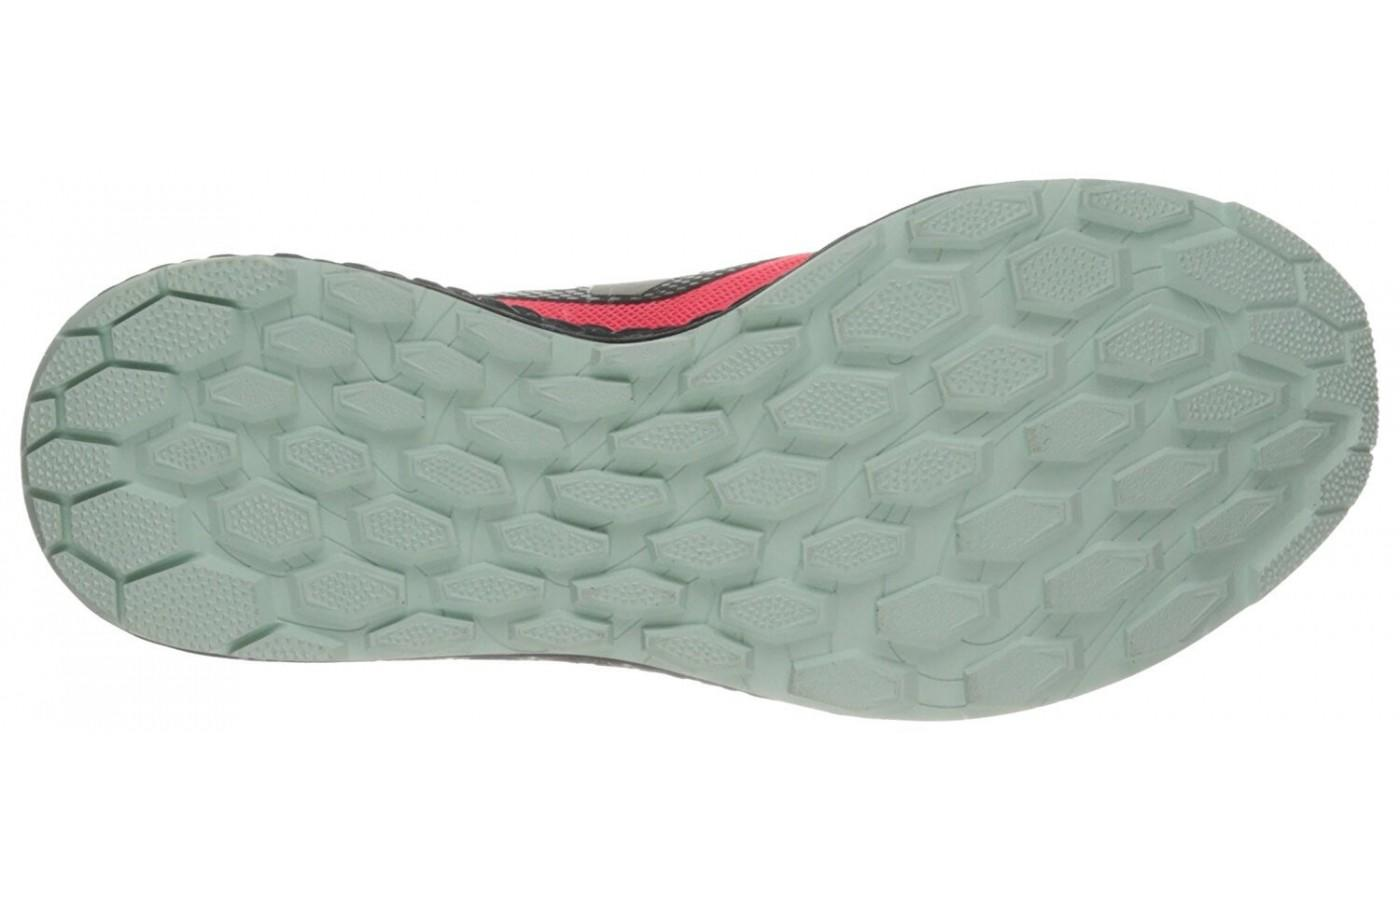 AT Tread provides light grip and protection that easily transitions between road and trail.